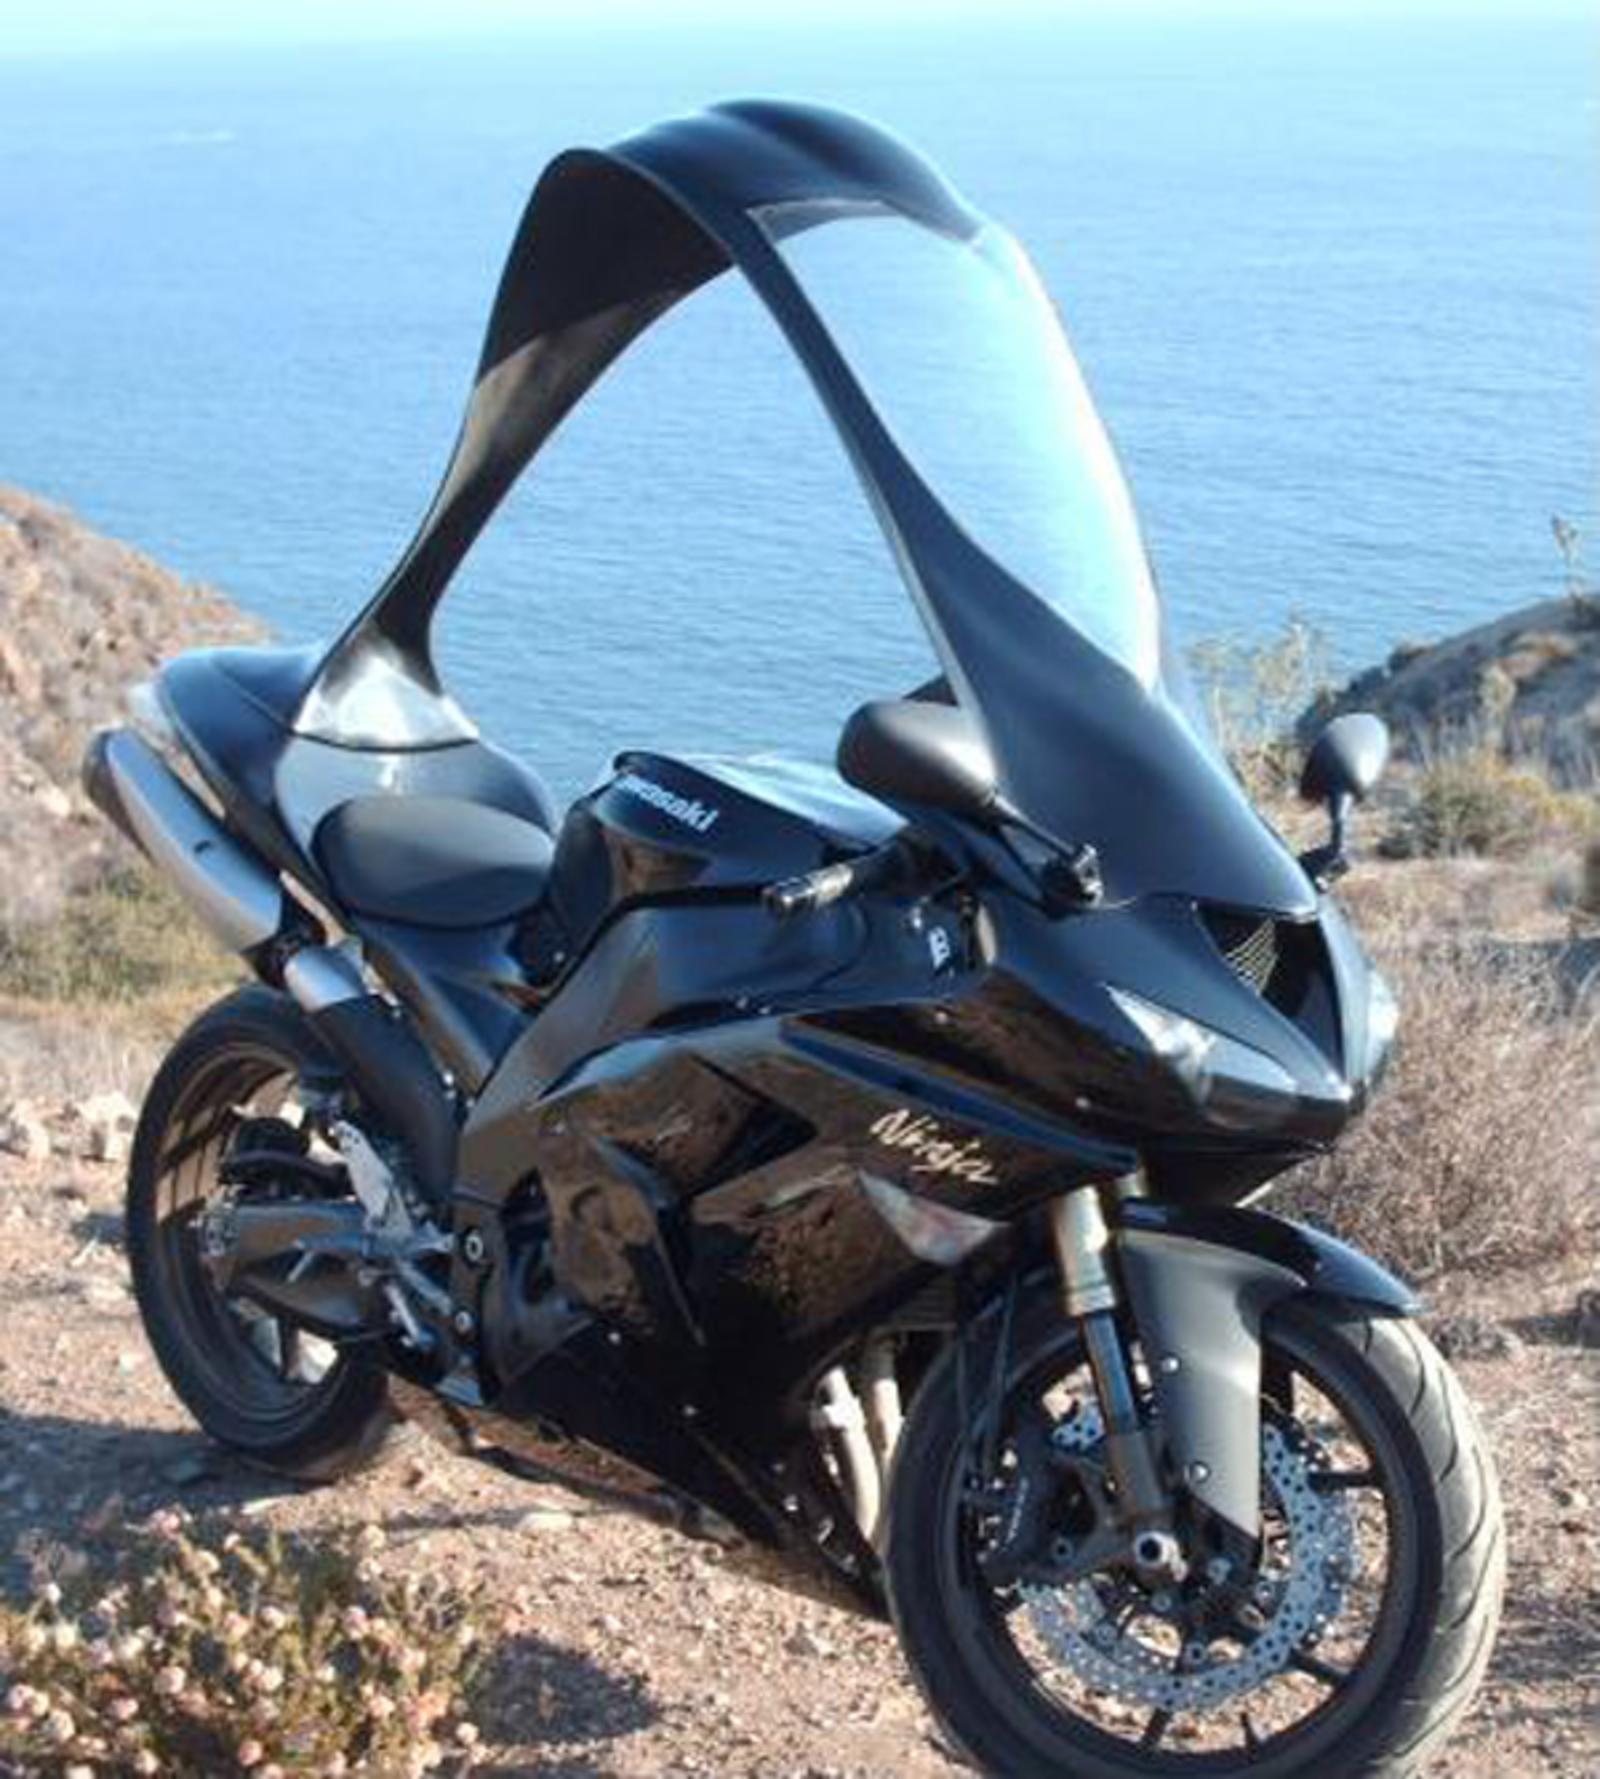 Strangest Motorcycle Accessory A Detachable Hardtop Canopy/windshield News - Top Speed & Strangest Motorcycle Accessory: A Detachable Hardtop Canopy ...